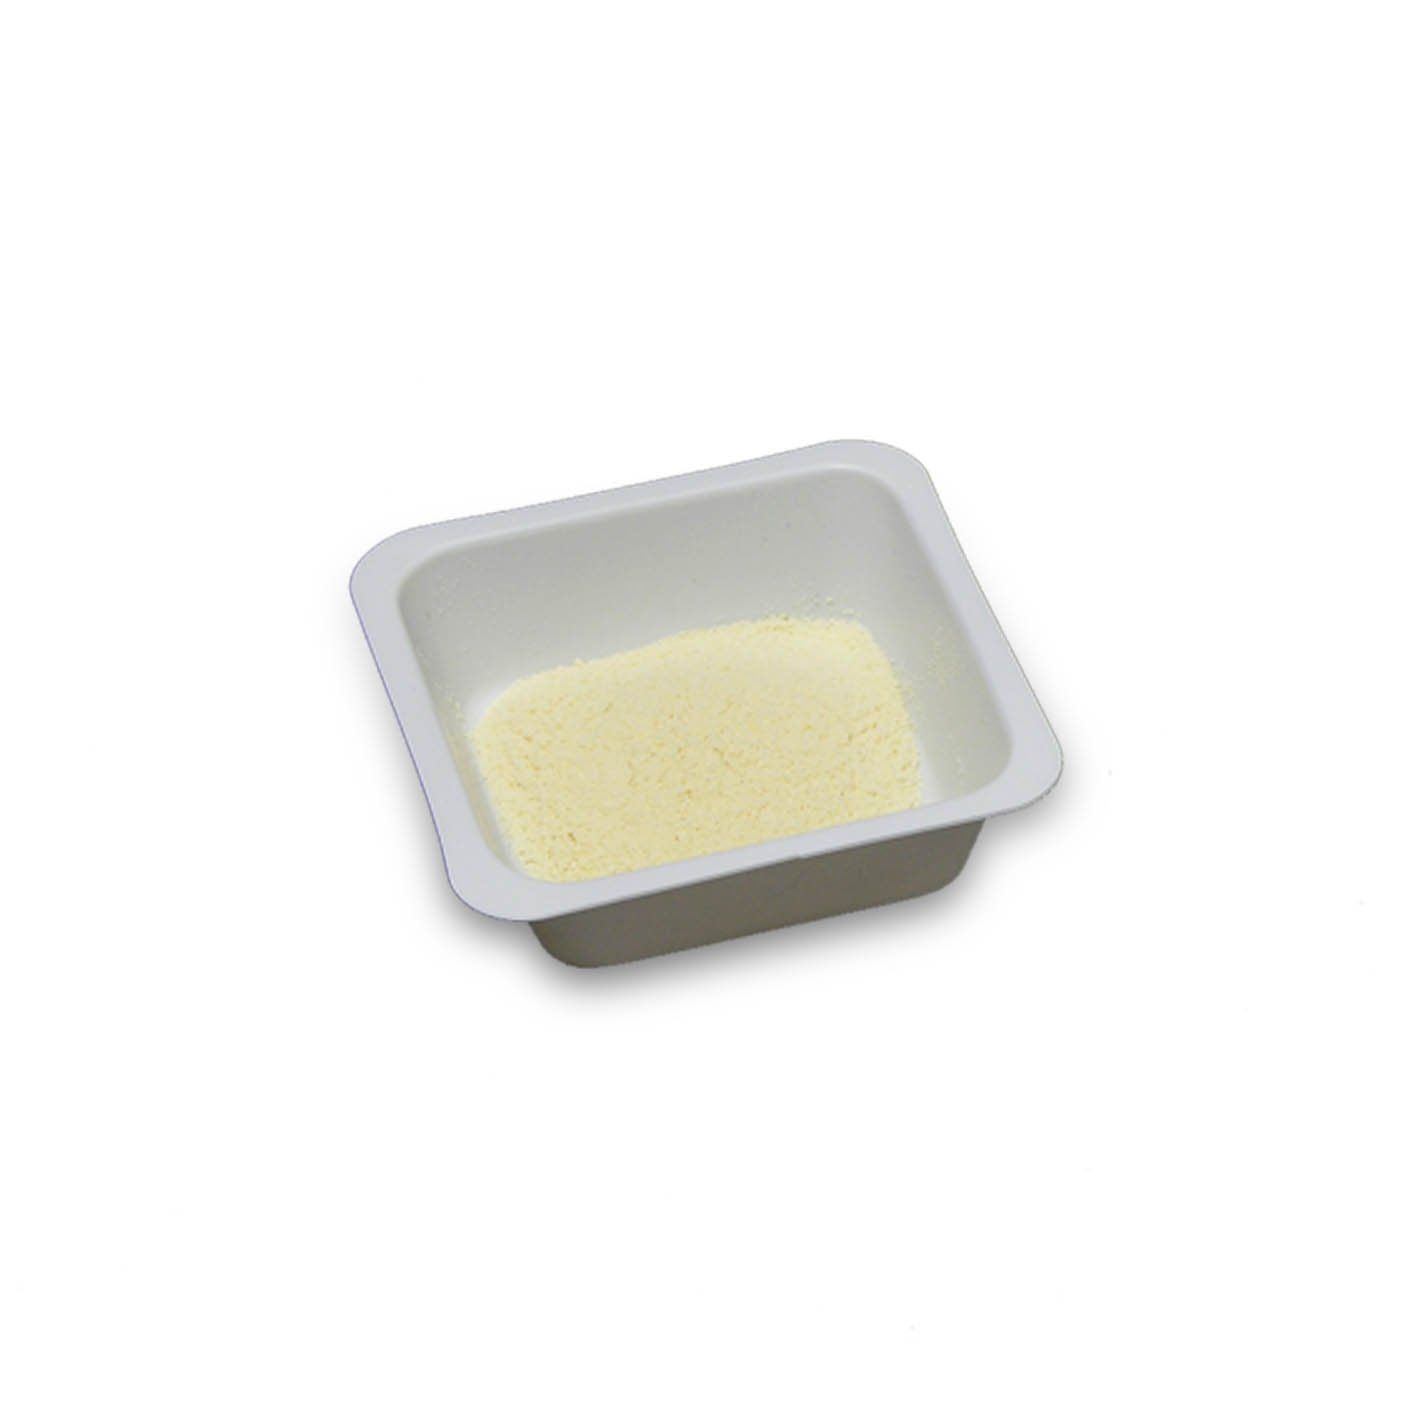 100mL White Antistatic Polystyrene Square Weigh Boat (10 Packs/Case - 500/Pack)